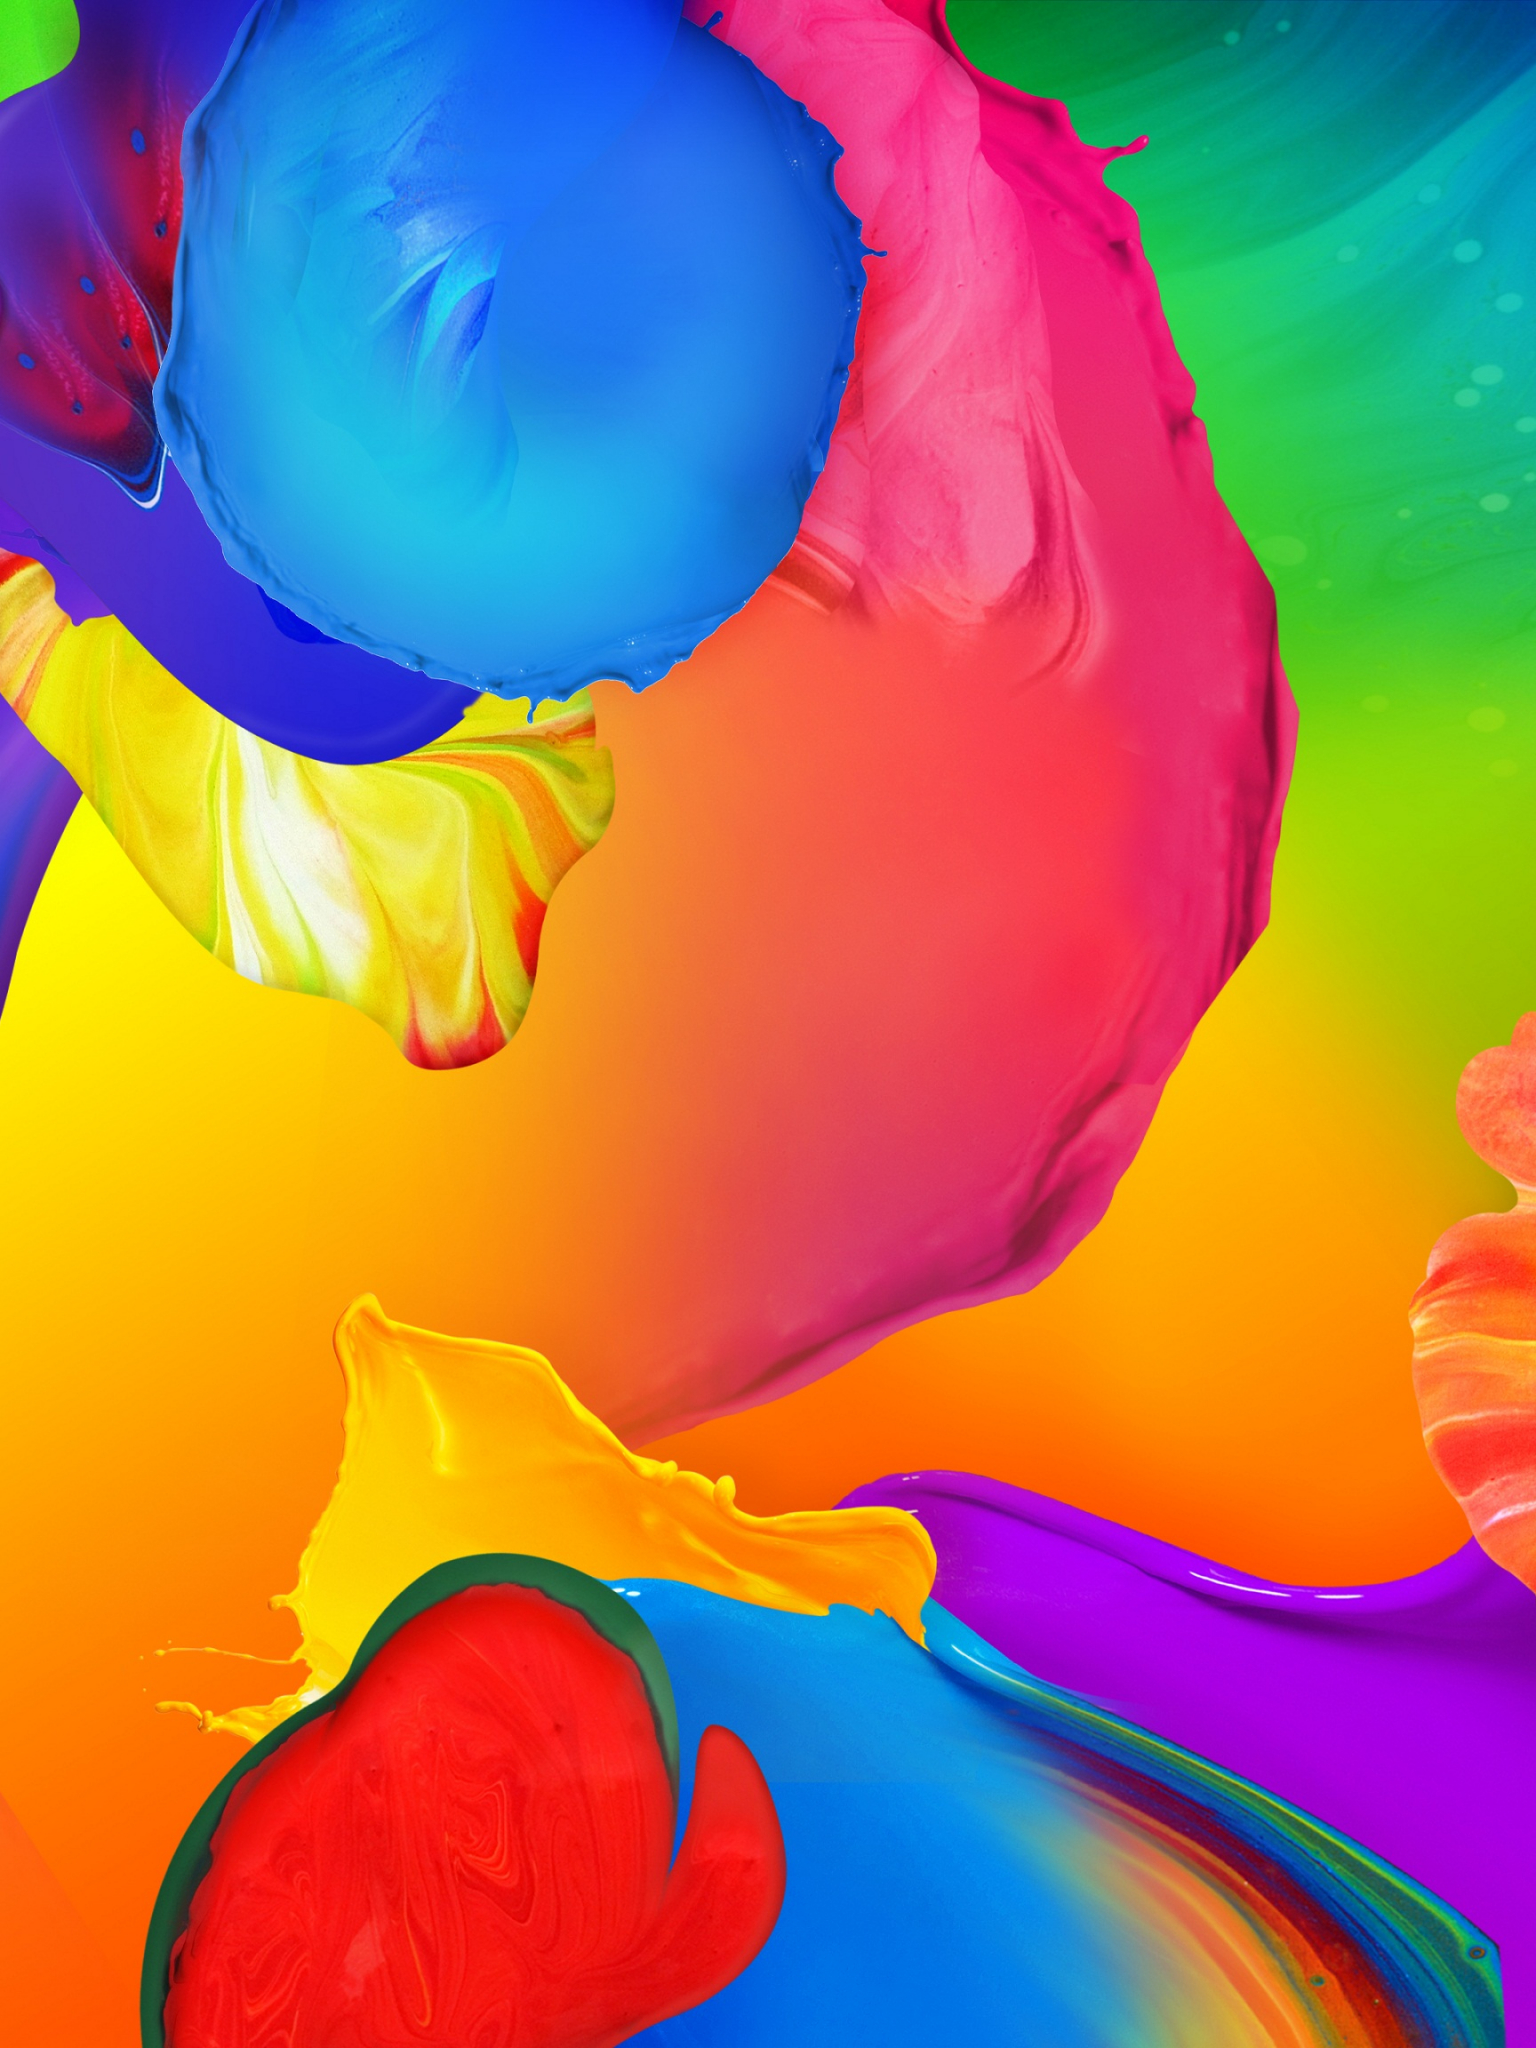 Free Download Wallpaper Samsung Galaxy Note 3 Wallpapers